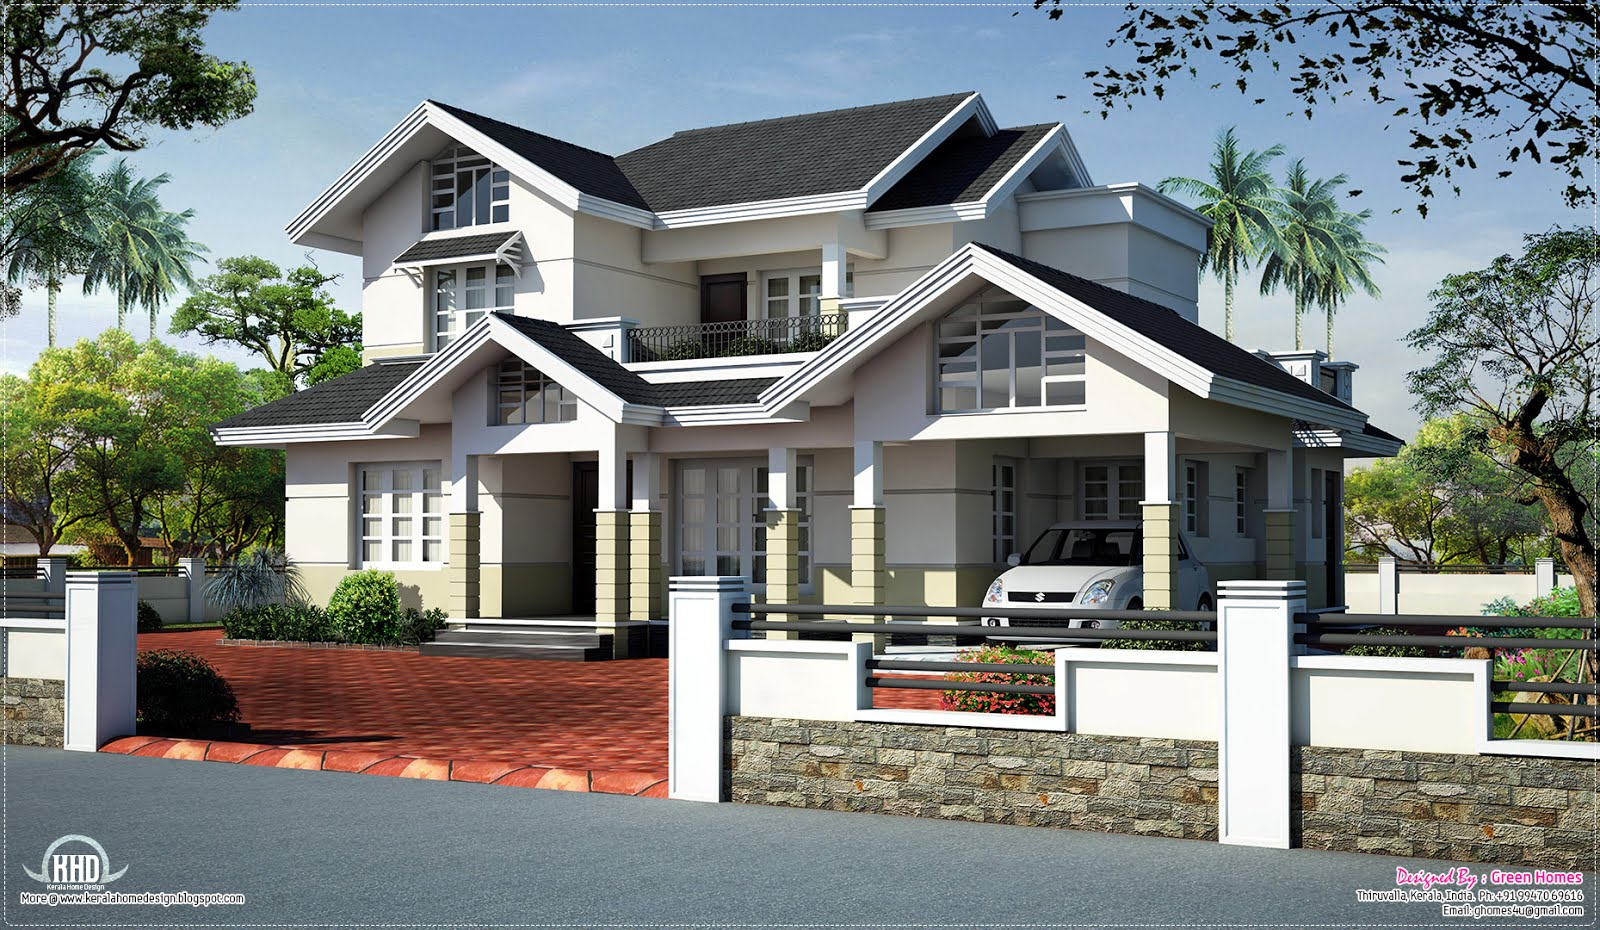 Sloped roof house elevation design kerala home design for Sloped roof house plans in india